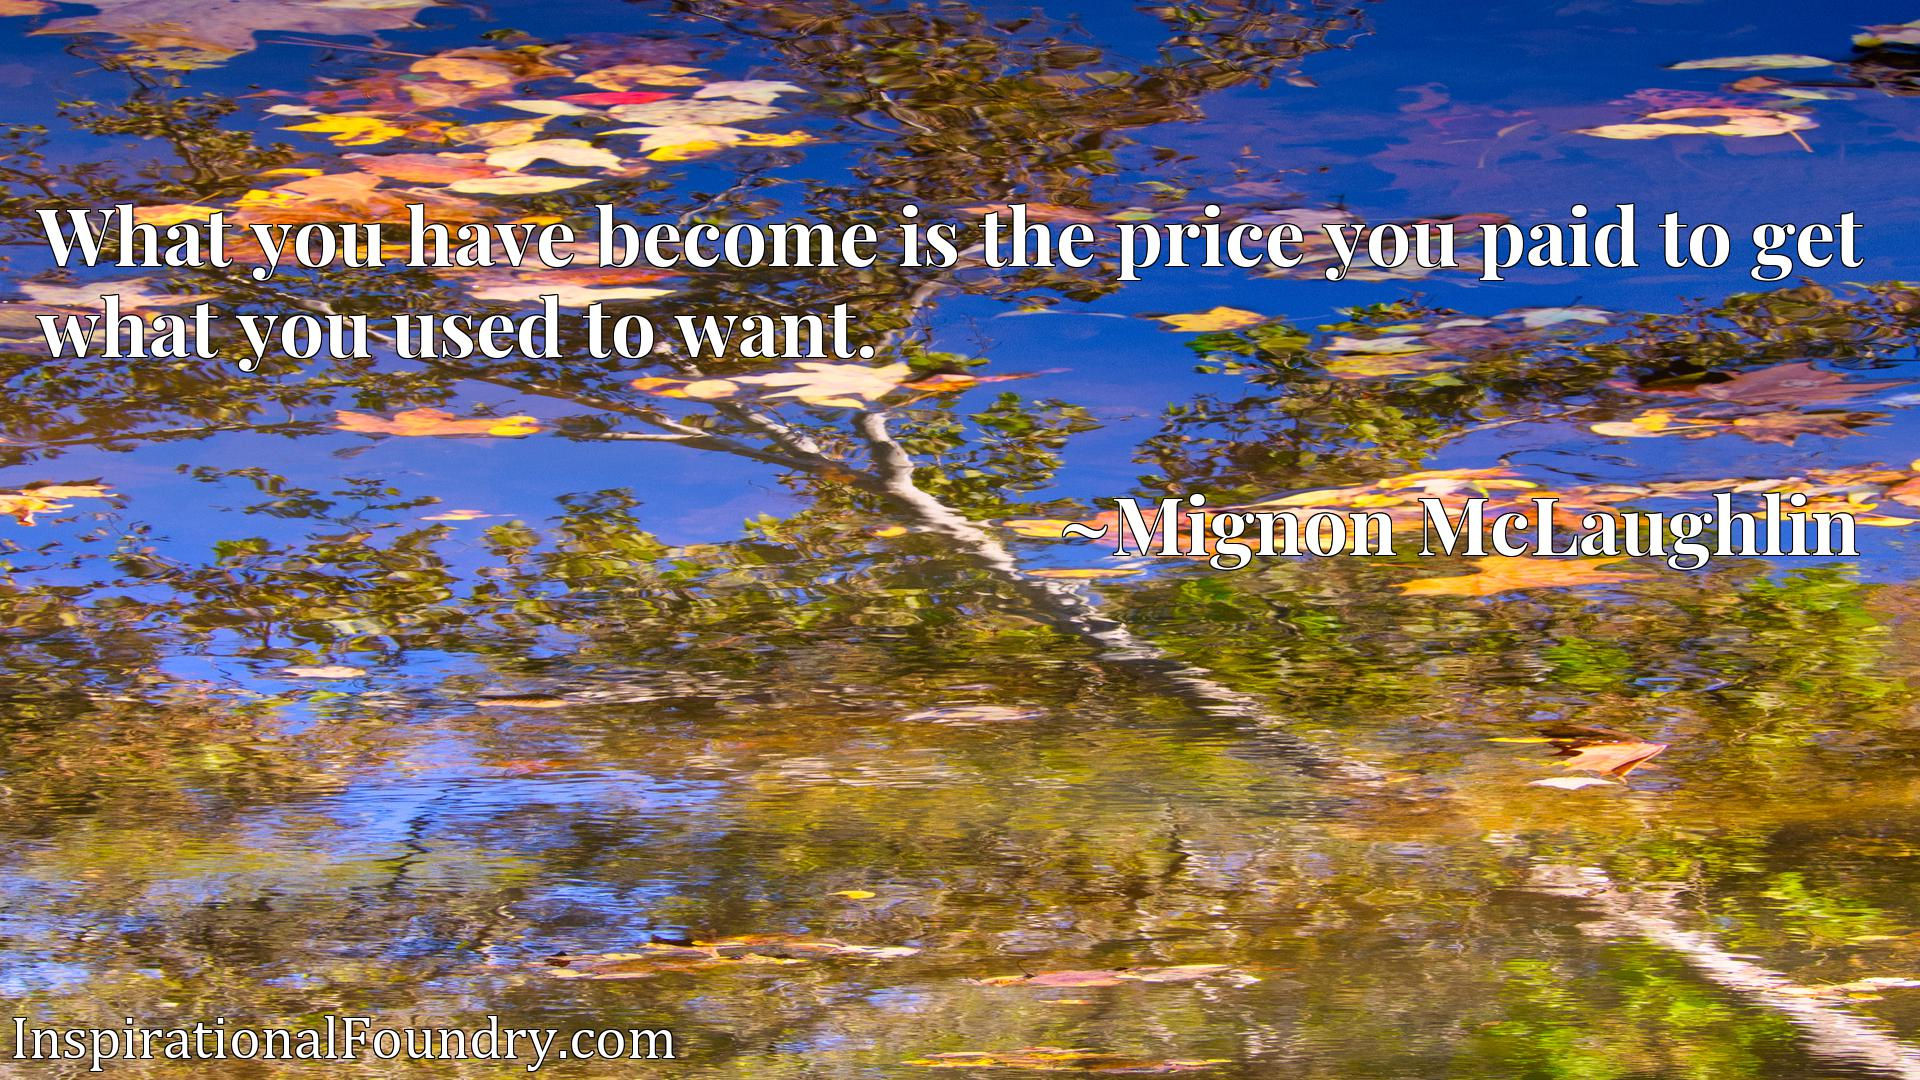 What you have become is the price you paid to get what you used to want.